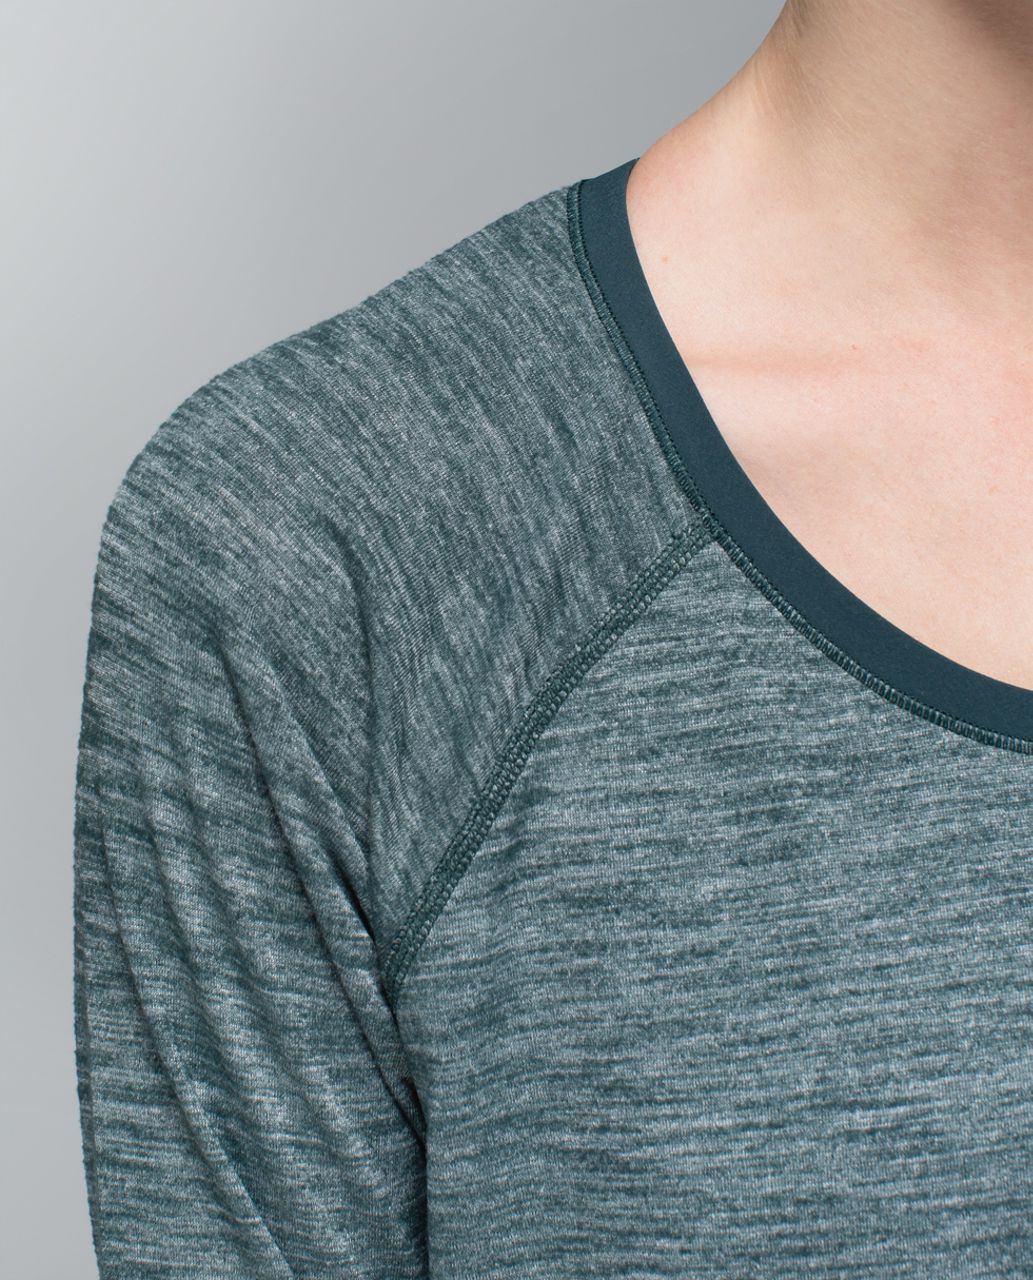 Lululemon Layered Long Sleeve Tee - Heathered Fuel Green / Fuel Green